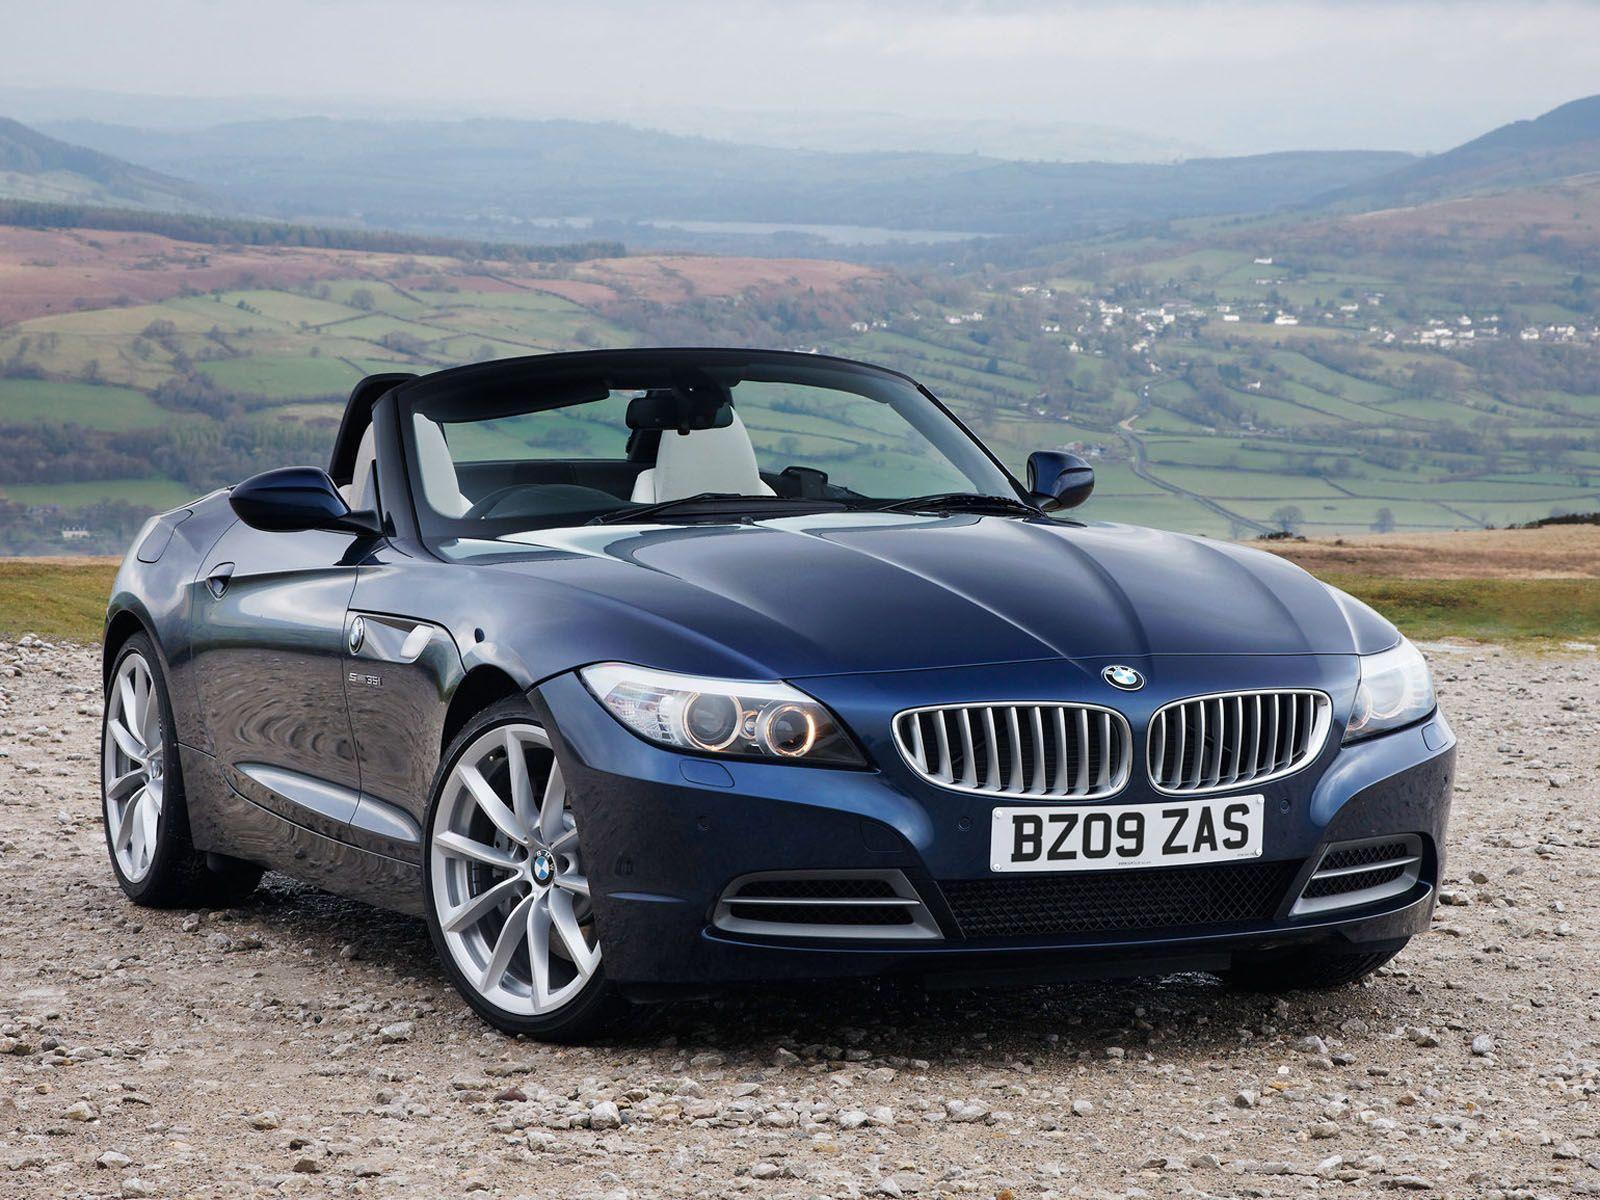 BMW Z4 Roadster UK Version - Wallpaperish